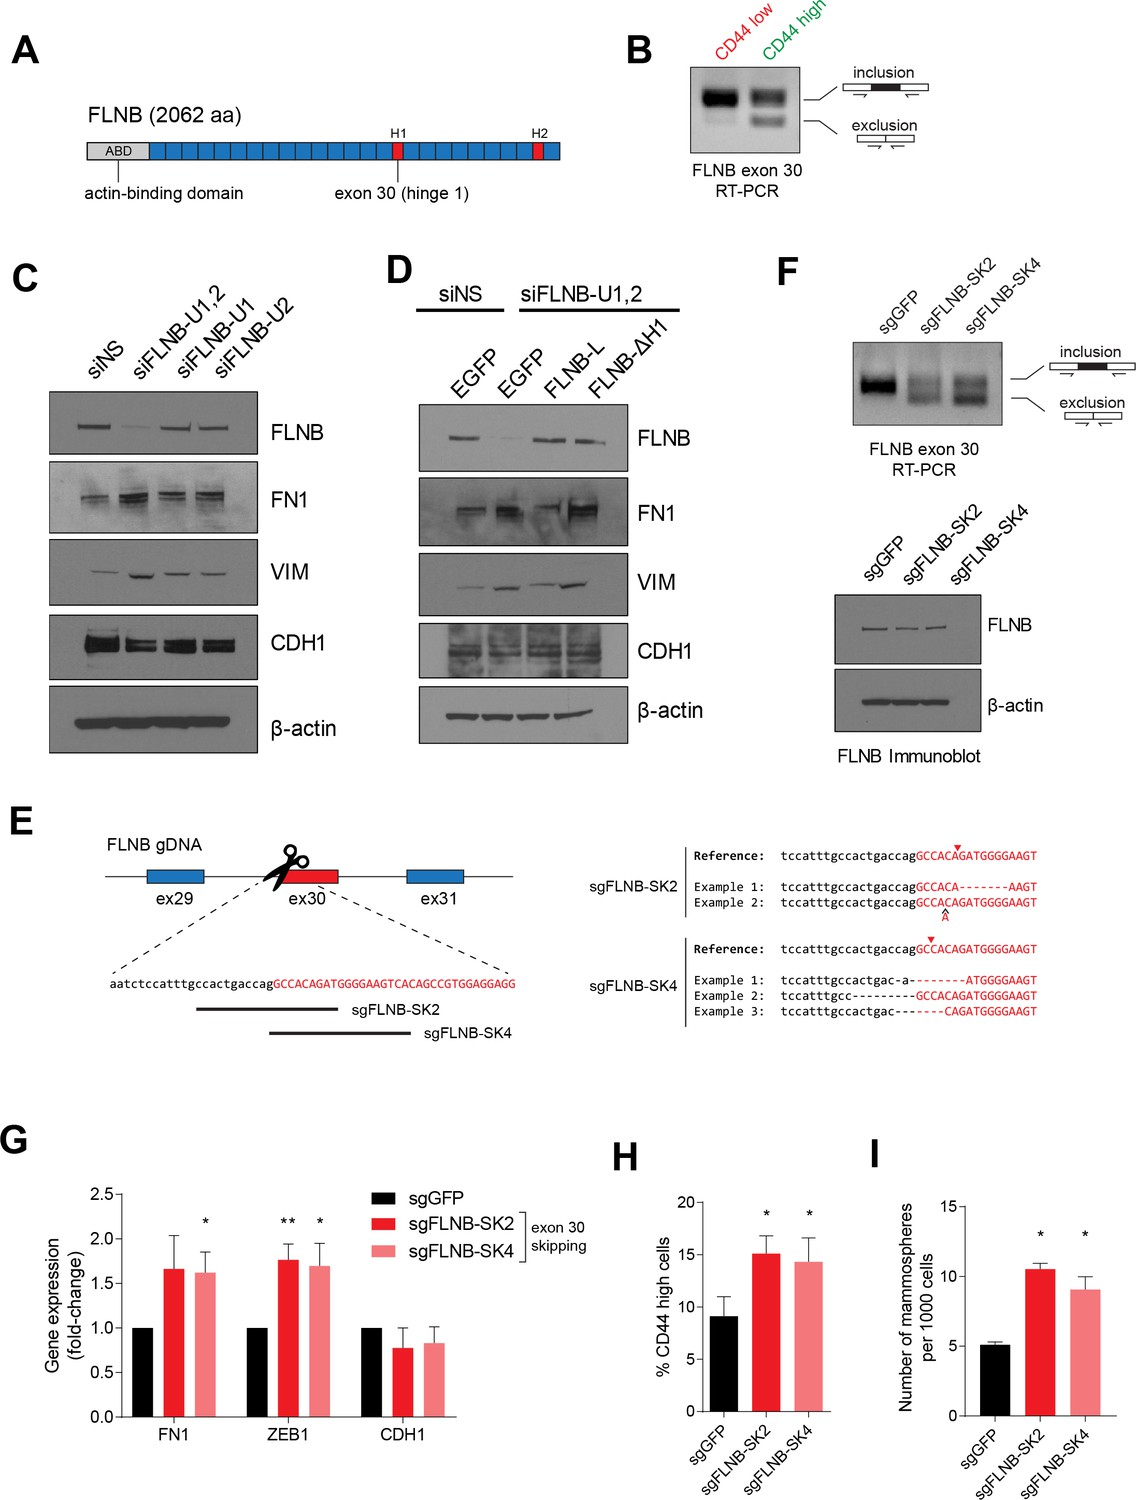 An Alternative Splicing Switch In Flnb Promotes The Mesenchymal Cell Ledcircuitcalculator Circuit Playground 163 Resistor Power Isoform Switching State A Schematic